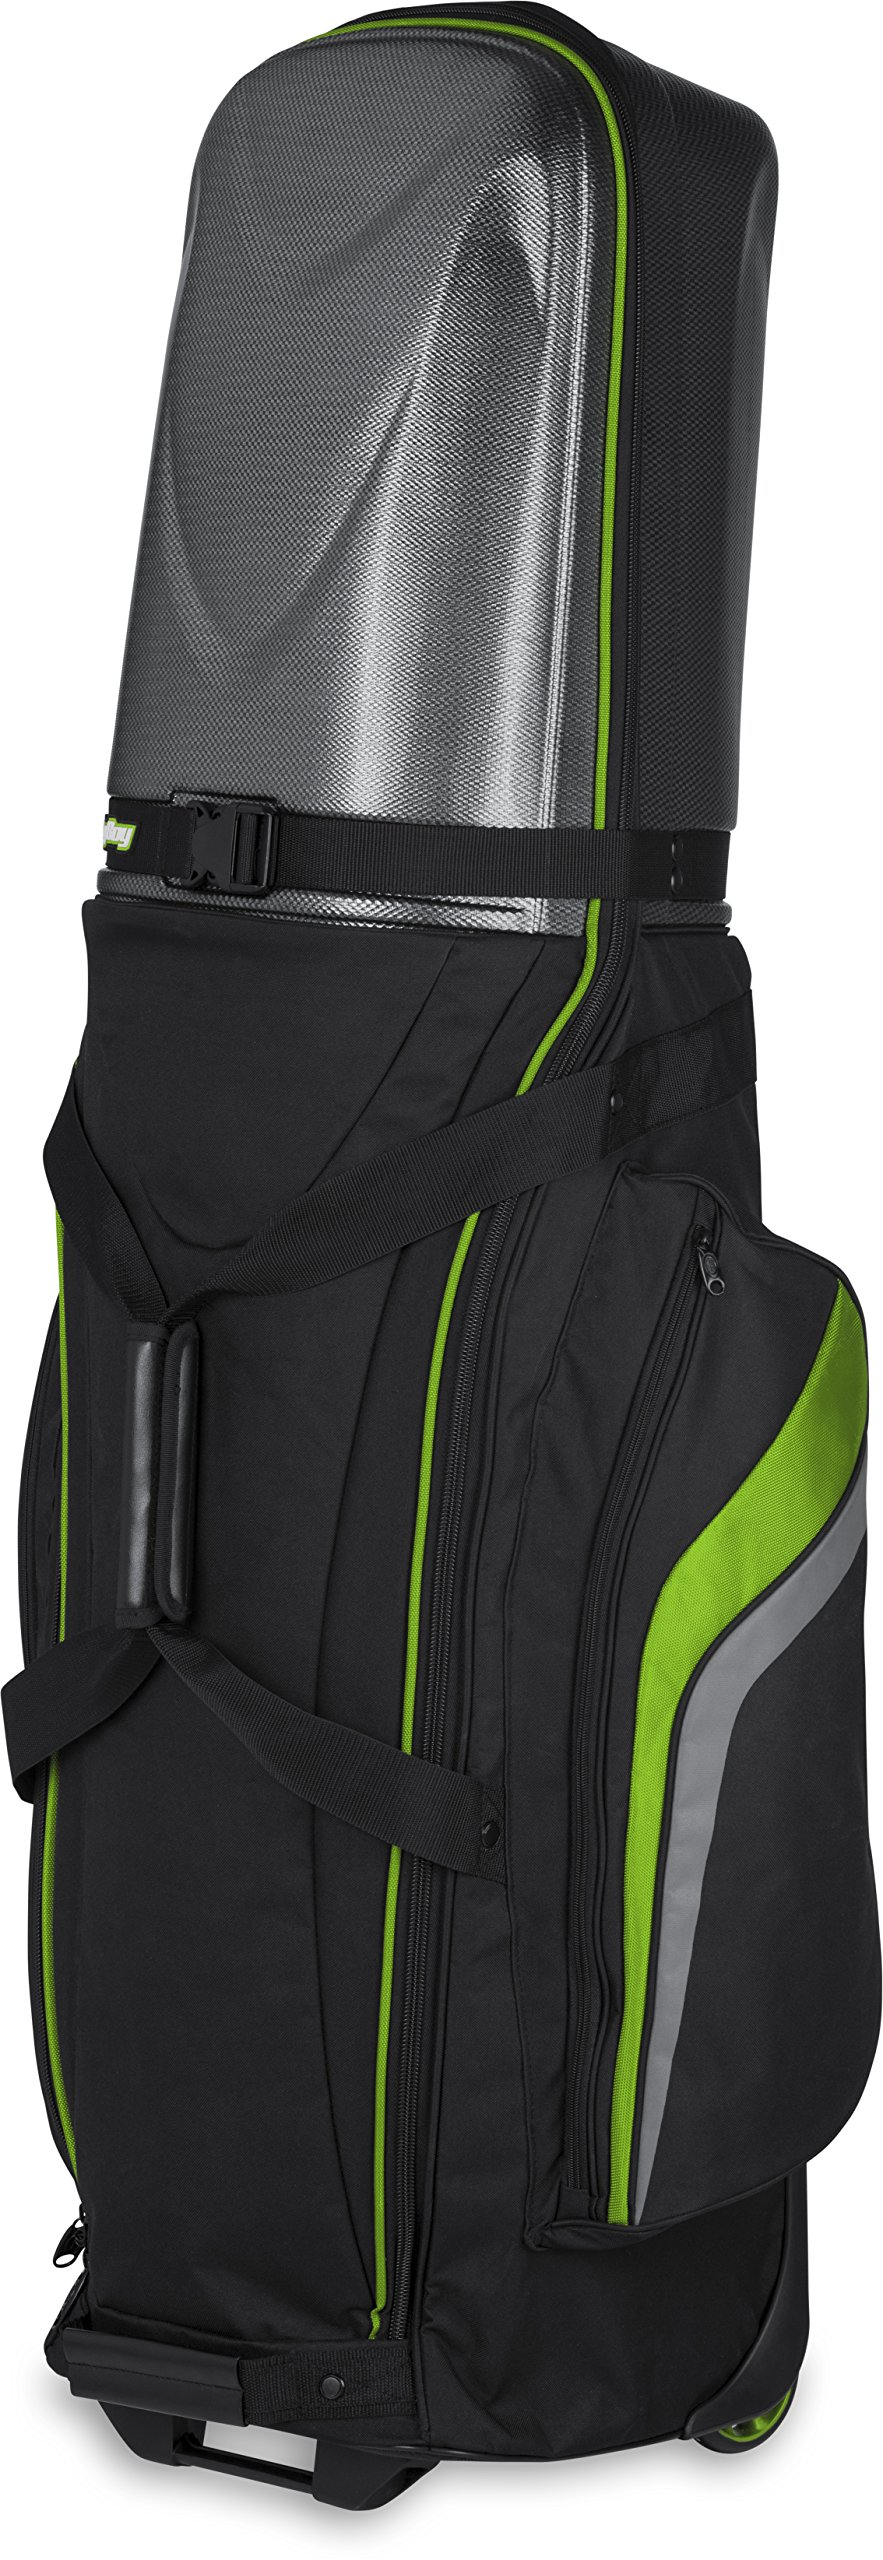 Bag Boy Golf T-10 Hard Top Travel Cover (Black/Lime/Charcoal, ) by Bag Boy